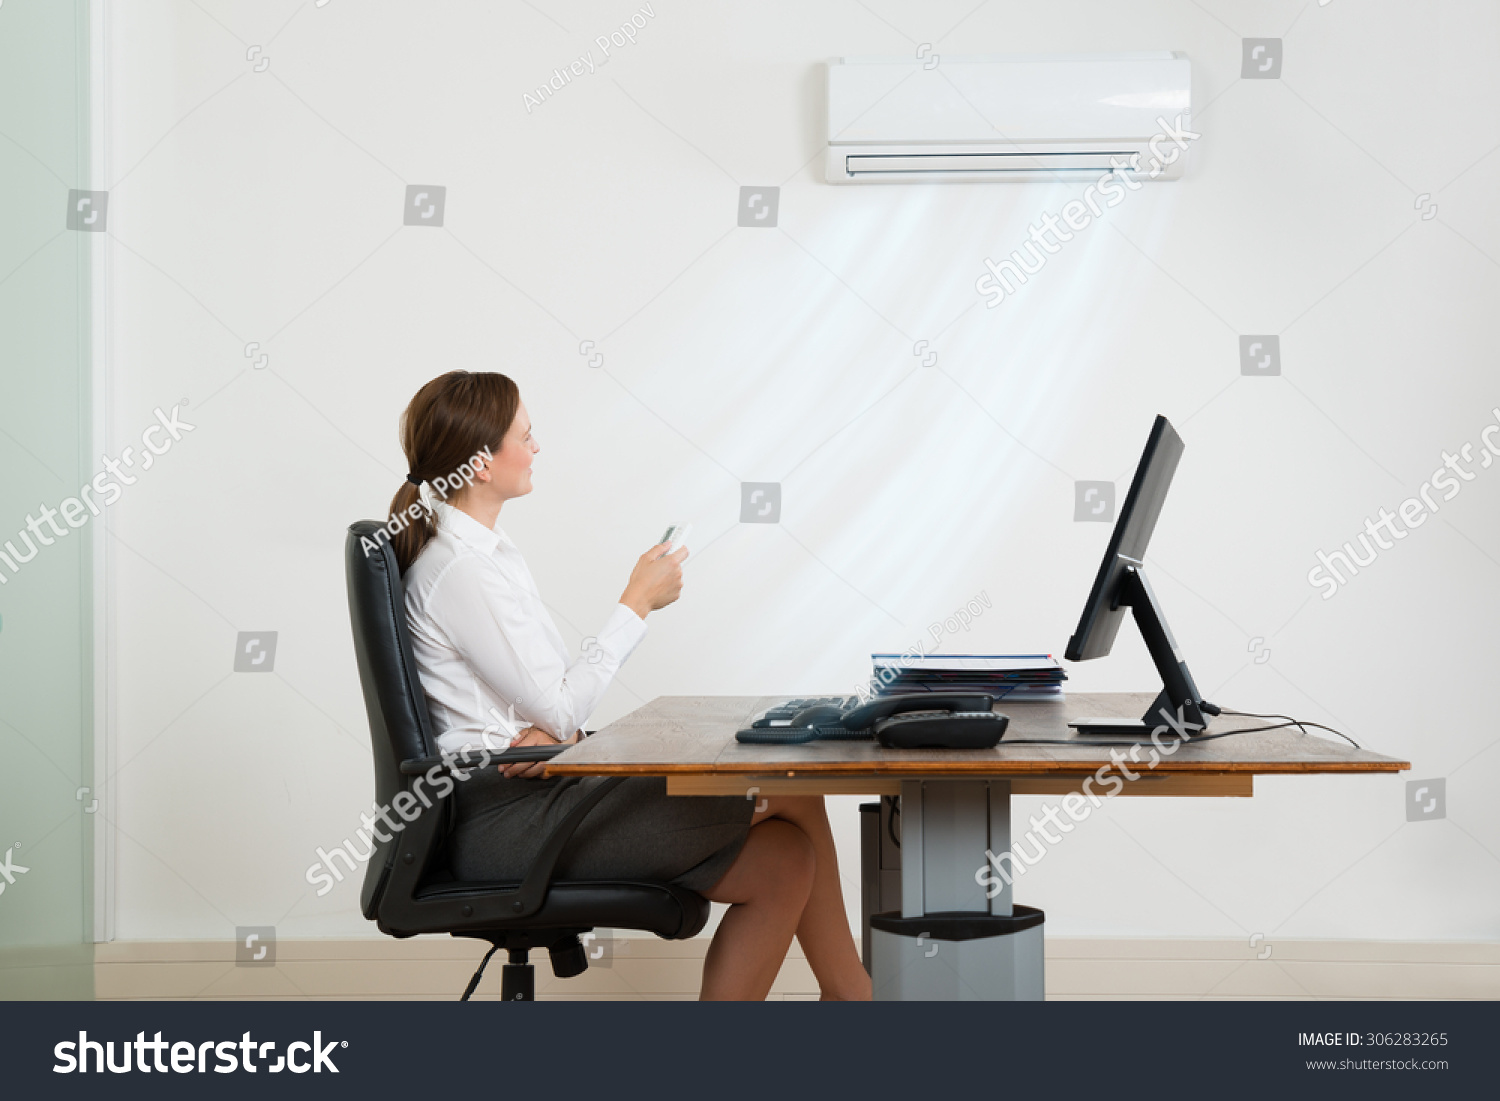 Young Businesswoman Sitting On Chair Using Air Conditioner In Office